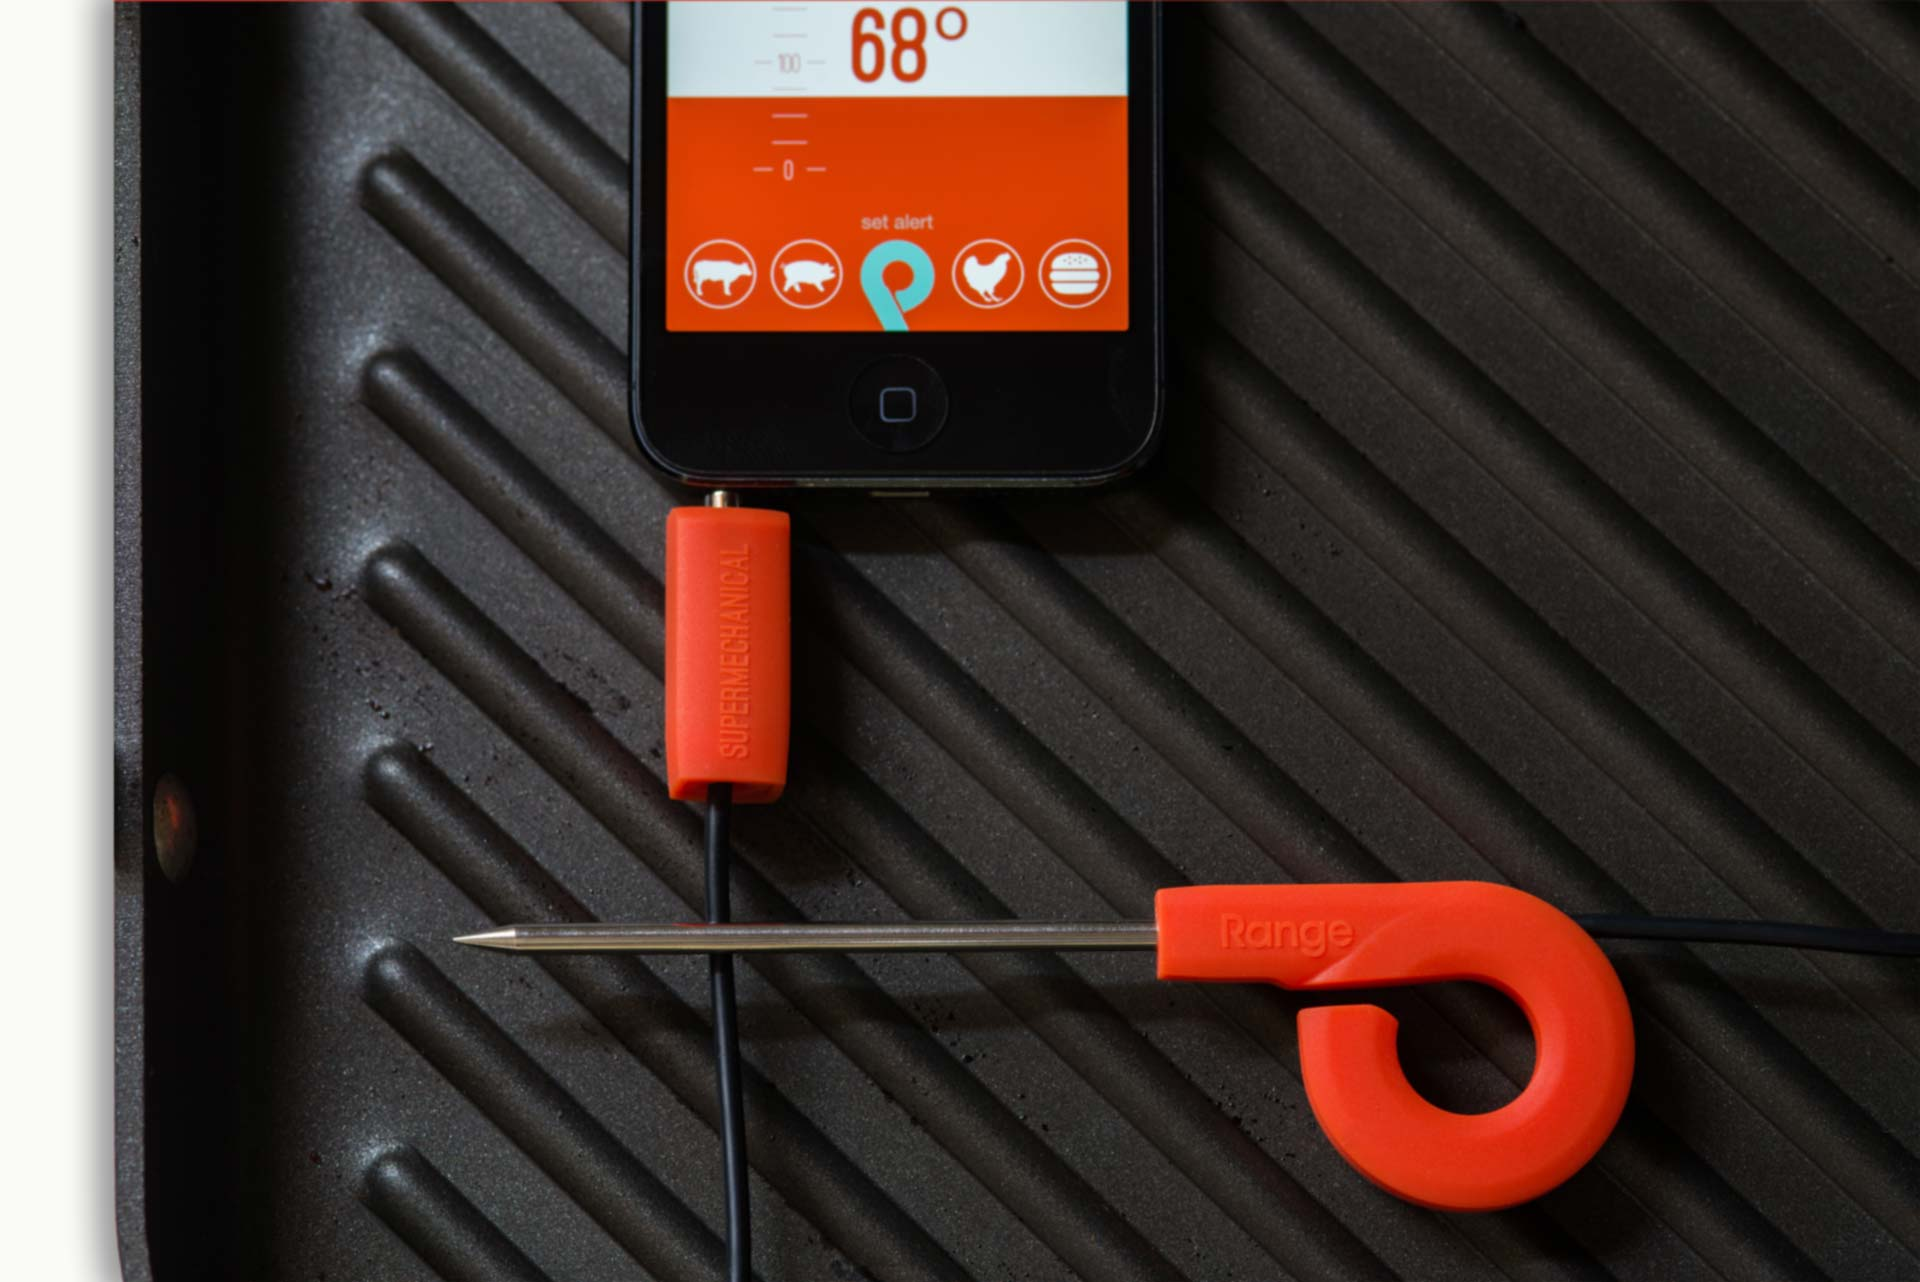 Range. Smart thermometer, smarter cook.